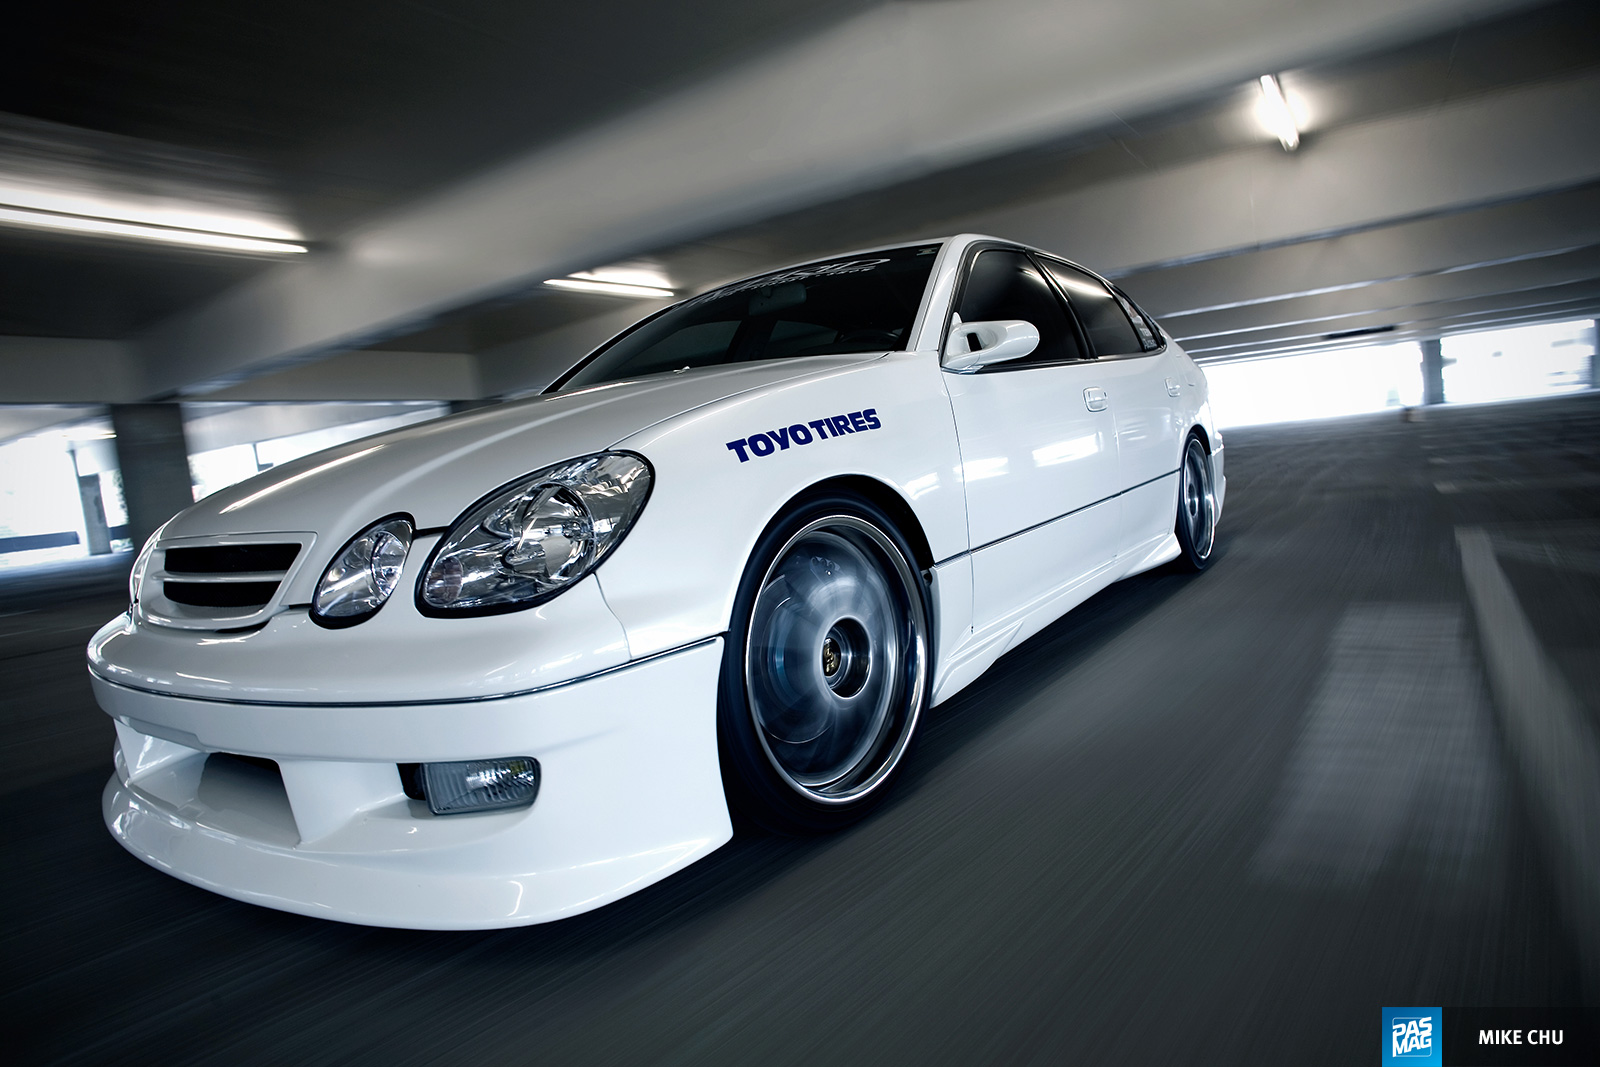 01 Kirby Wang 1998 Lexus GS300 Team Hybrid pasmag